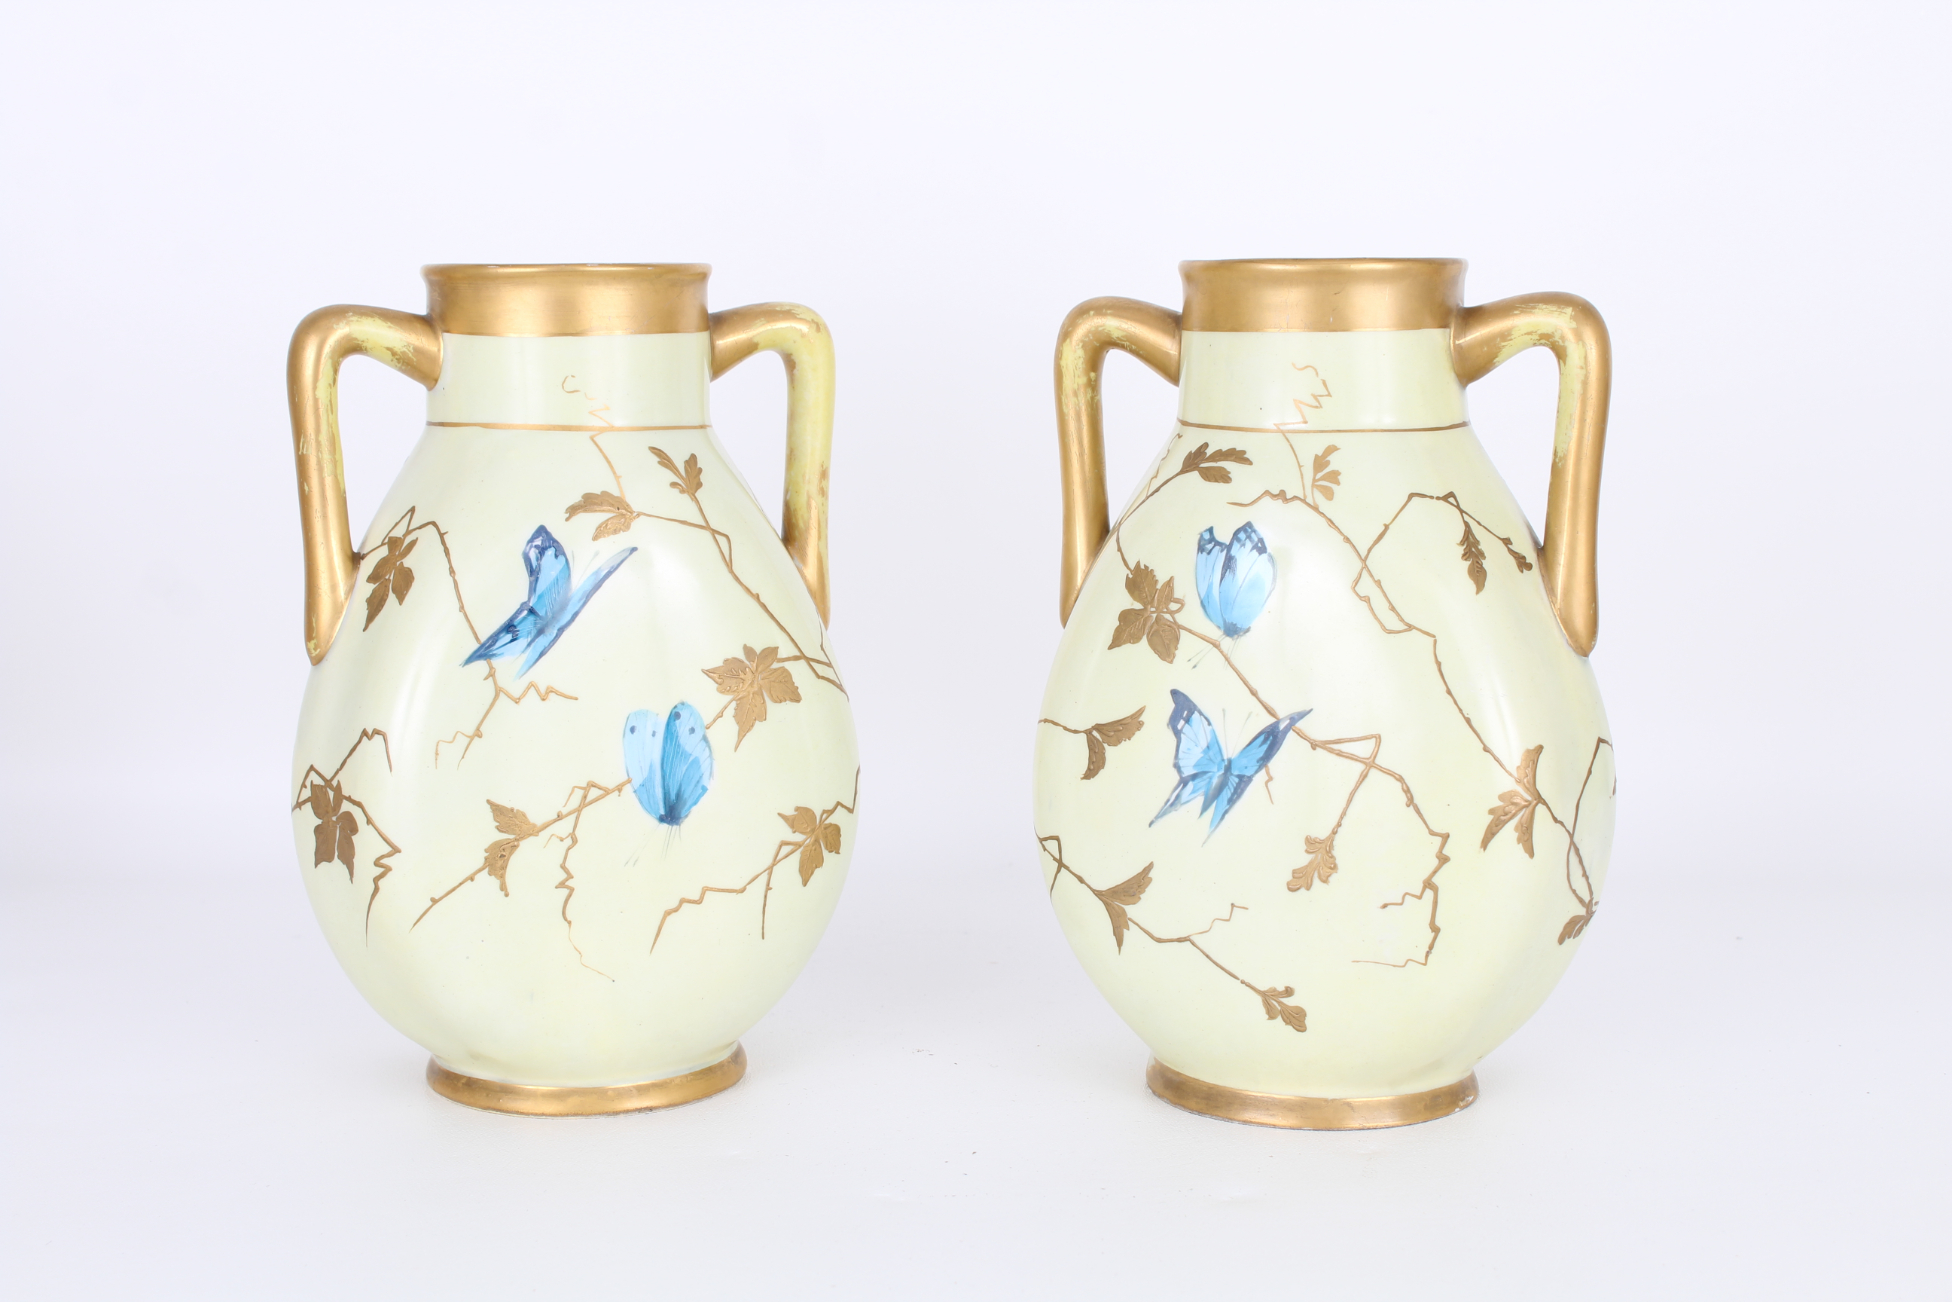 Pair, Antique French Aesthetic Period Vases - Image 2 of 3